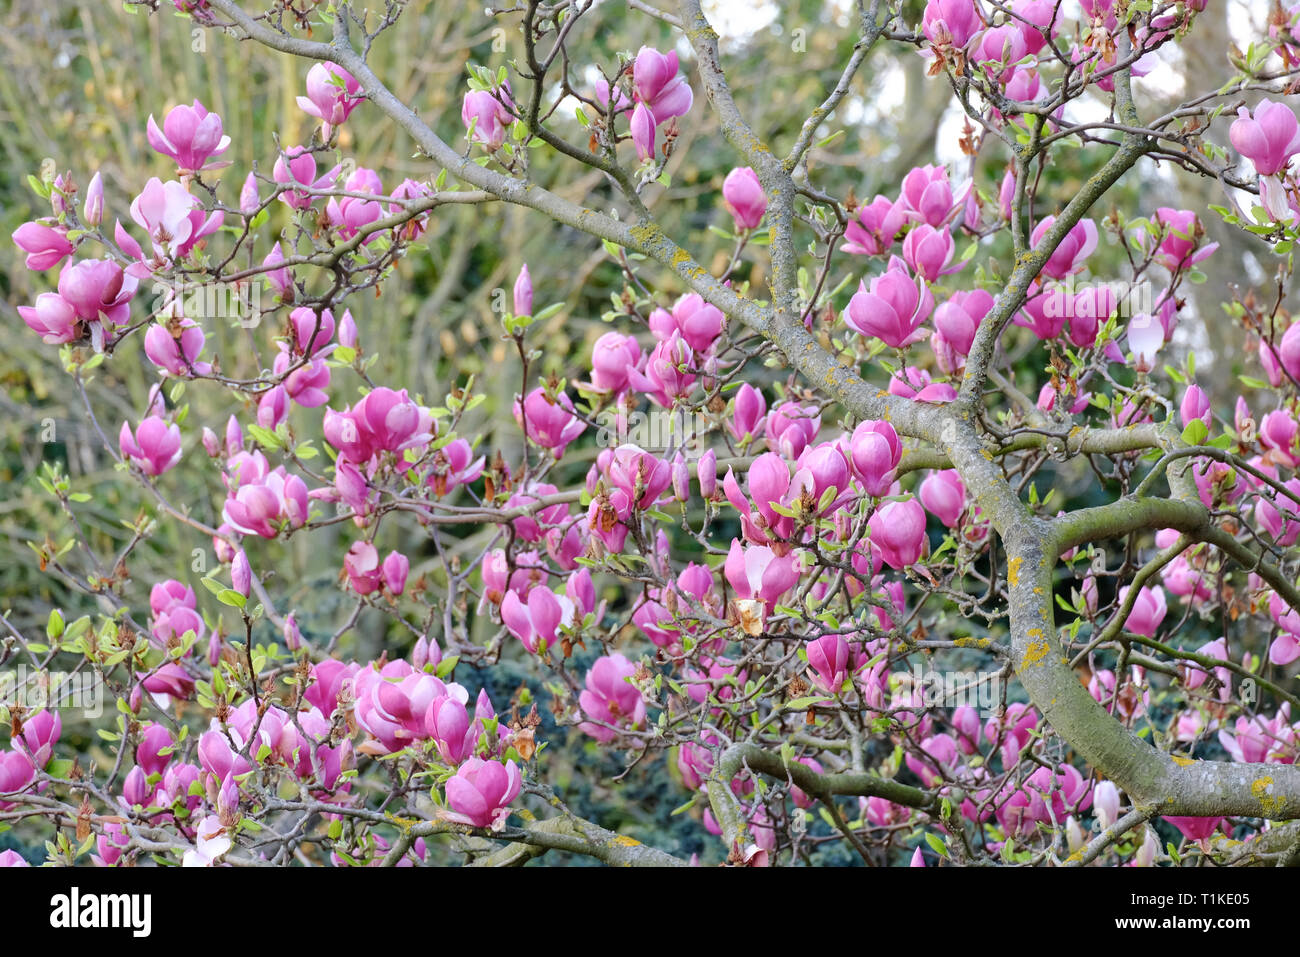 Pink Magnolia Tree With Blooms And Budding Leaves Stock Photo